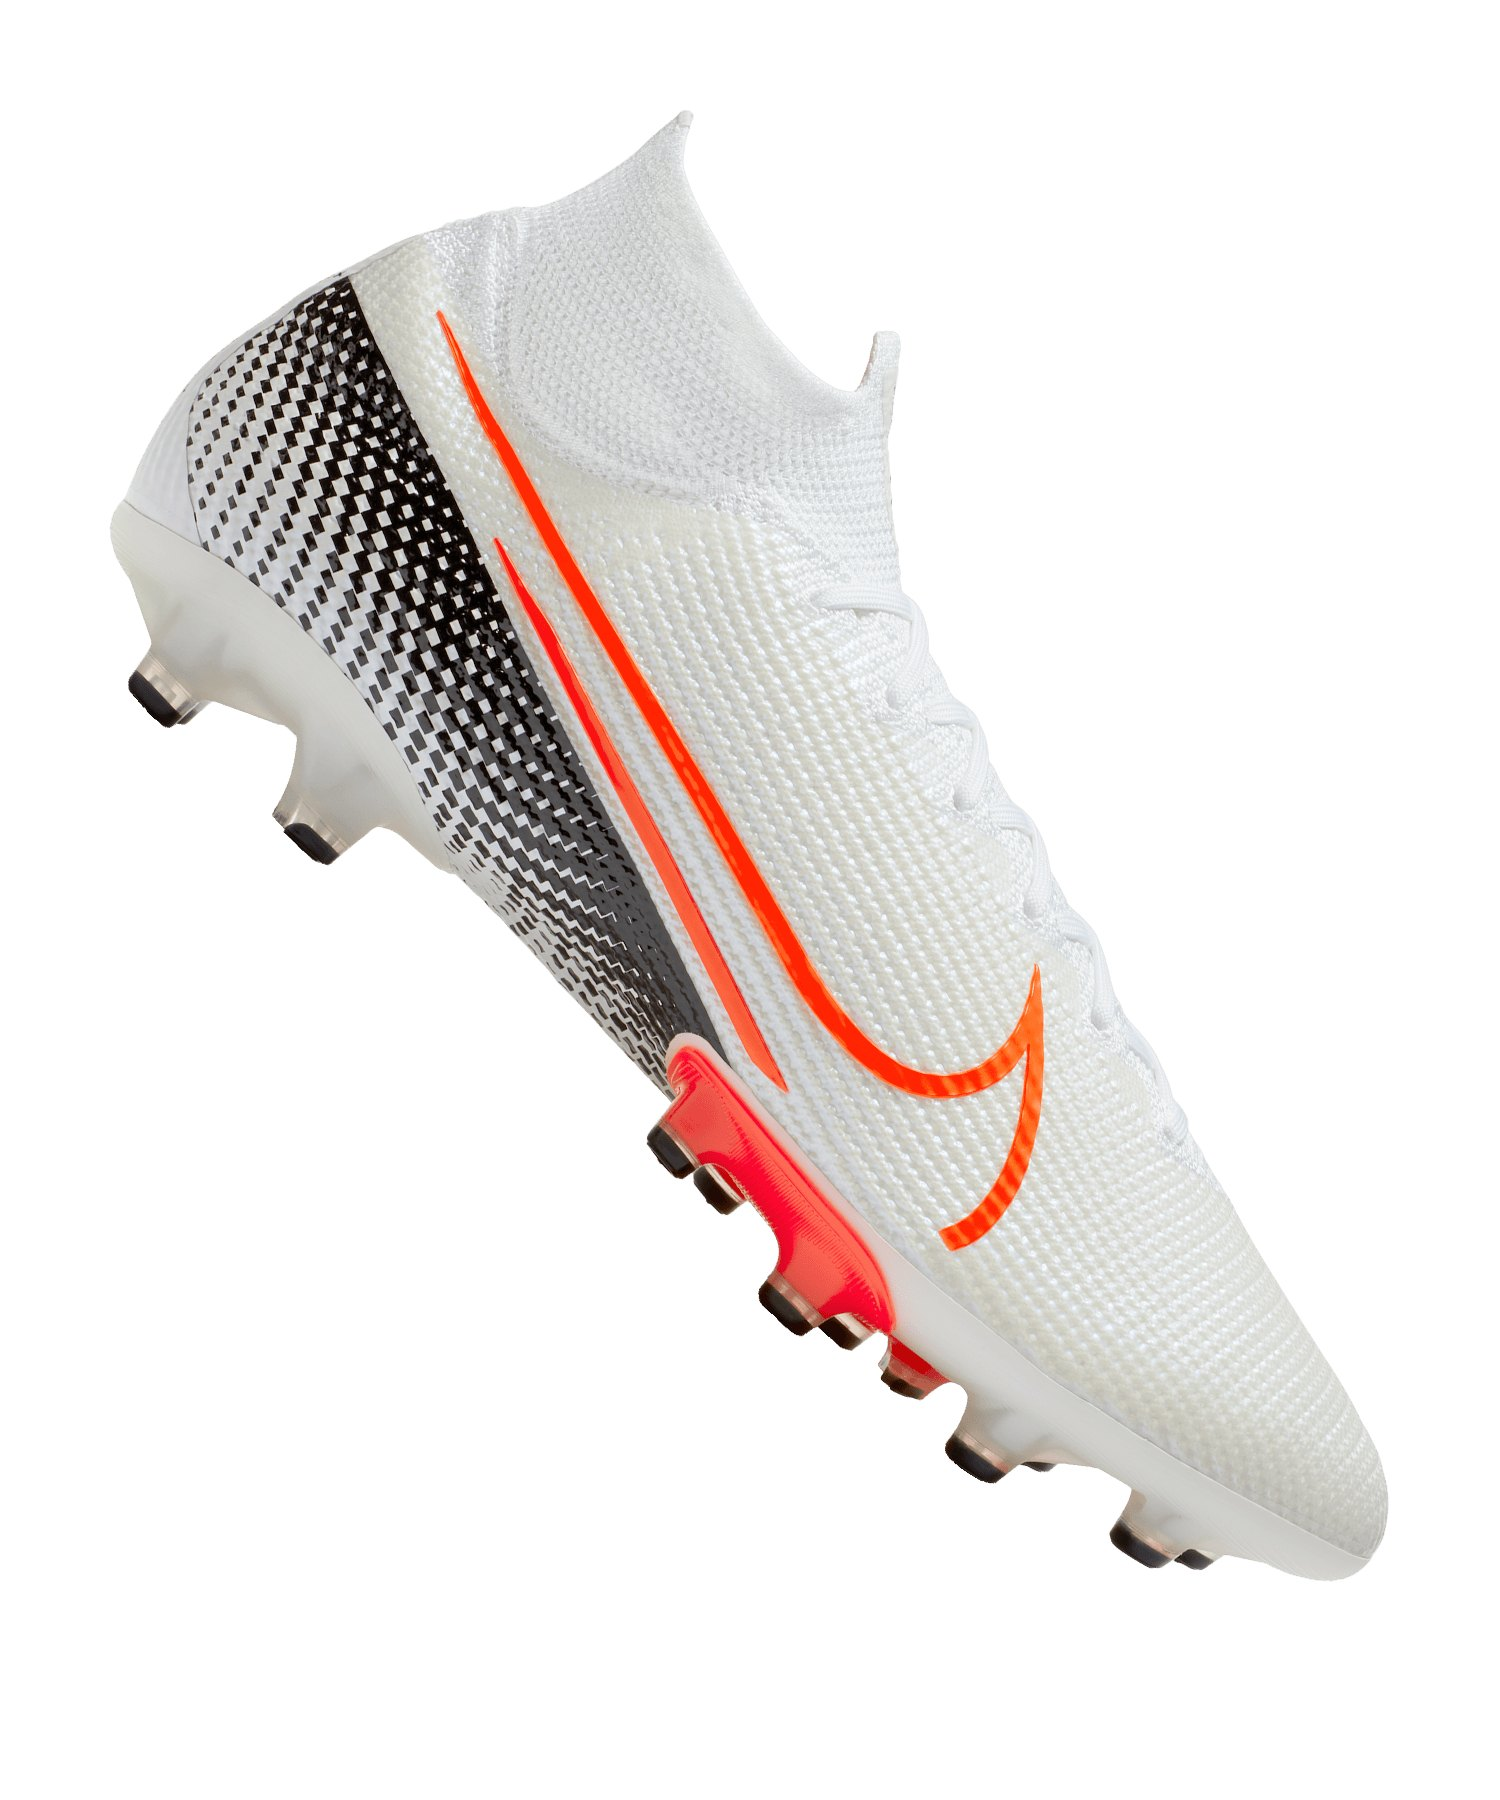 Nike Mercurial Superfly VII Future Lab II Elite AG-Pro Weiss F160 - weiss